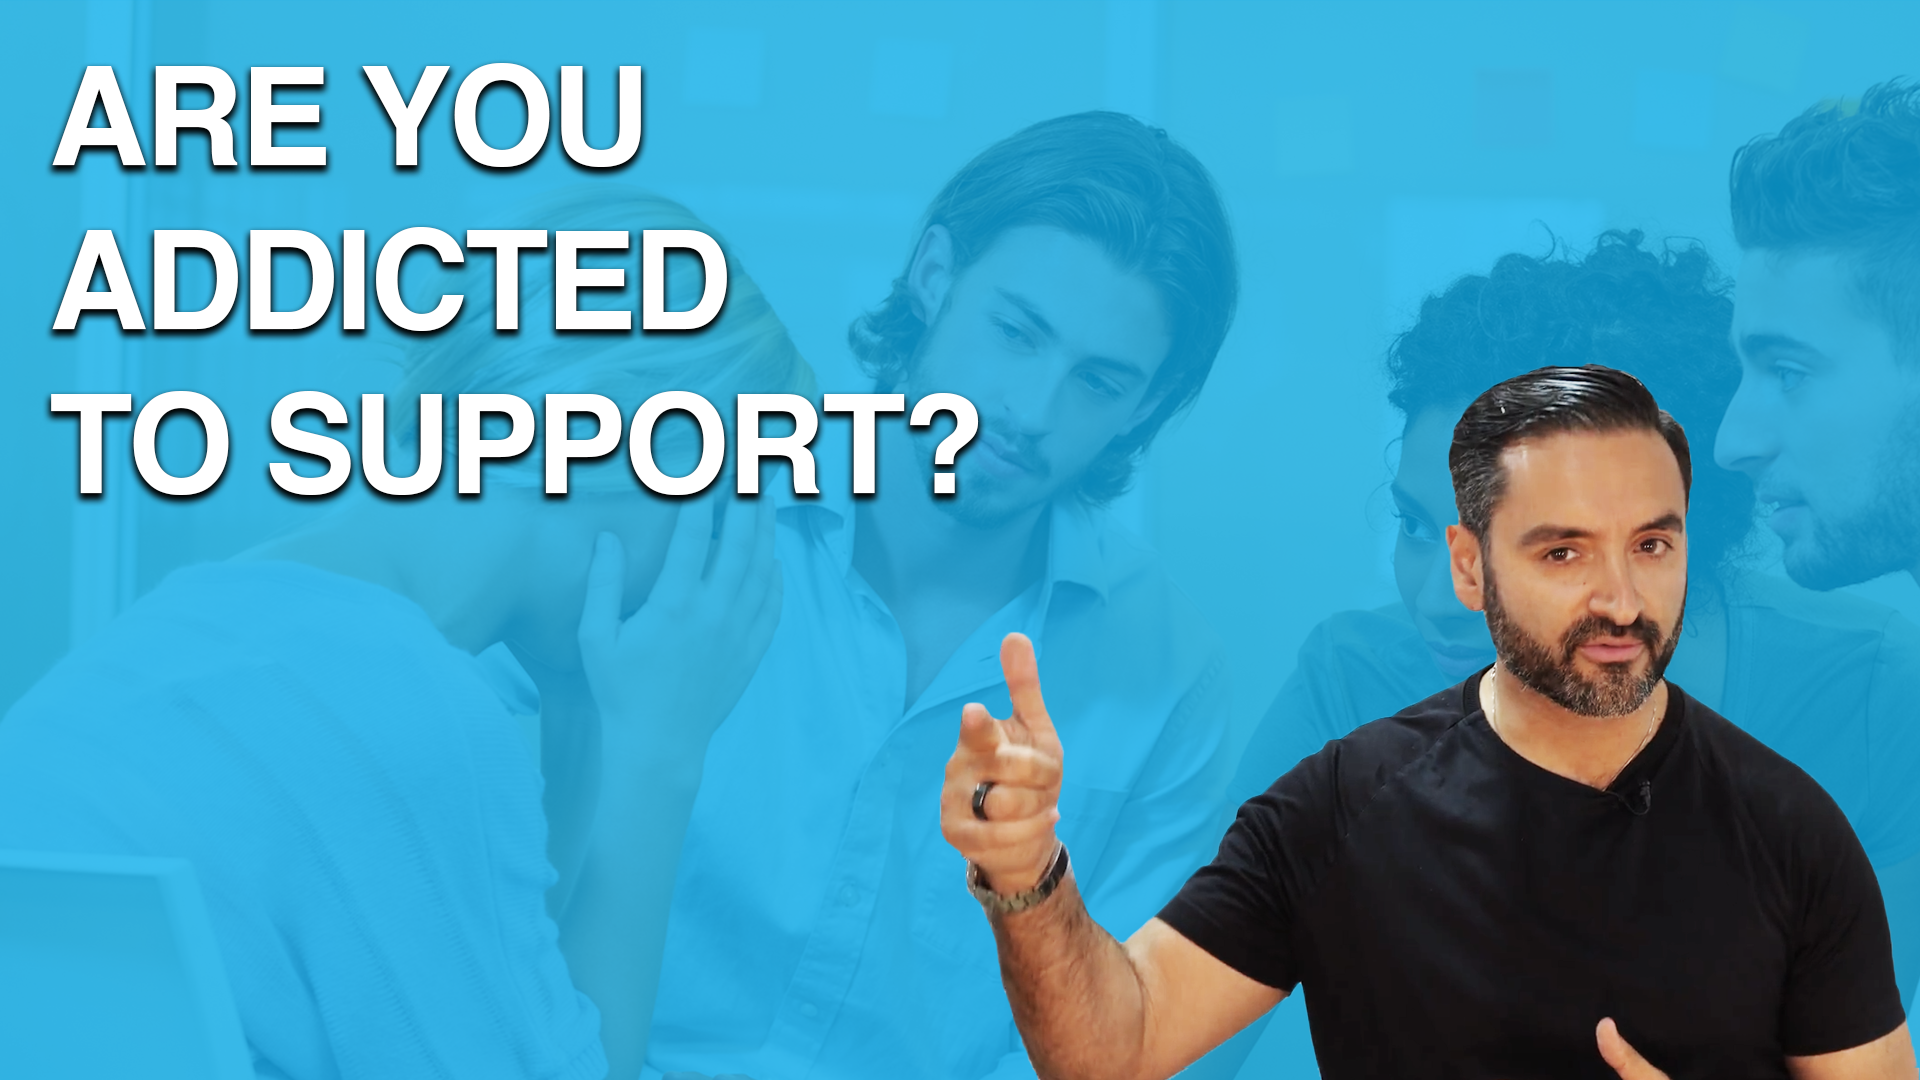 Are You Addicted to Support?